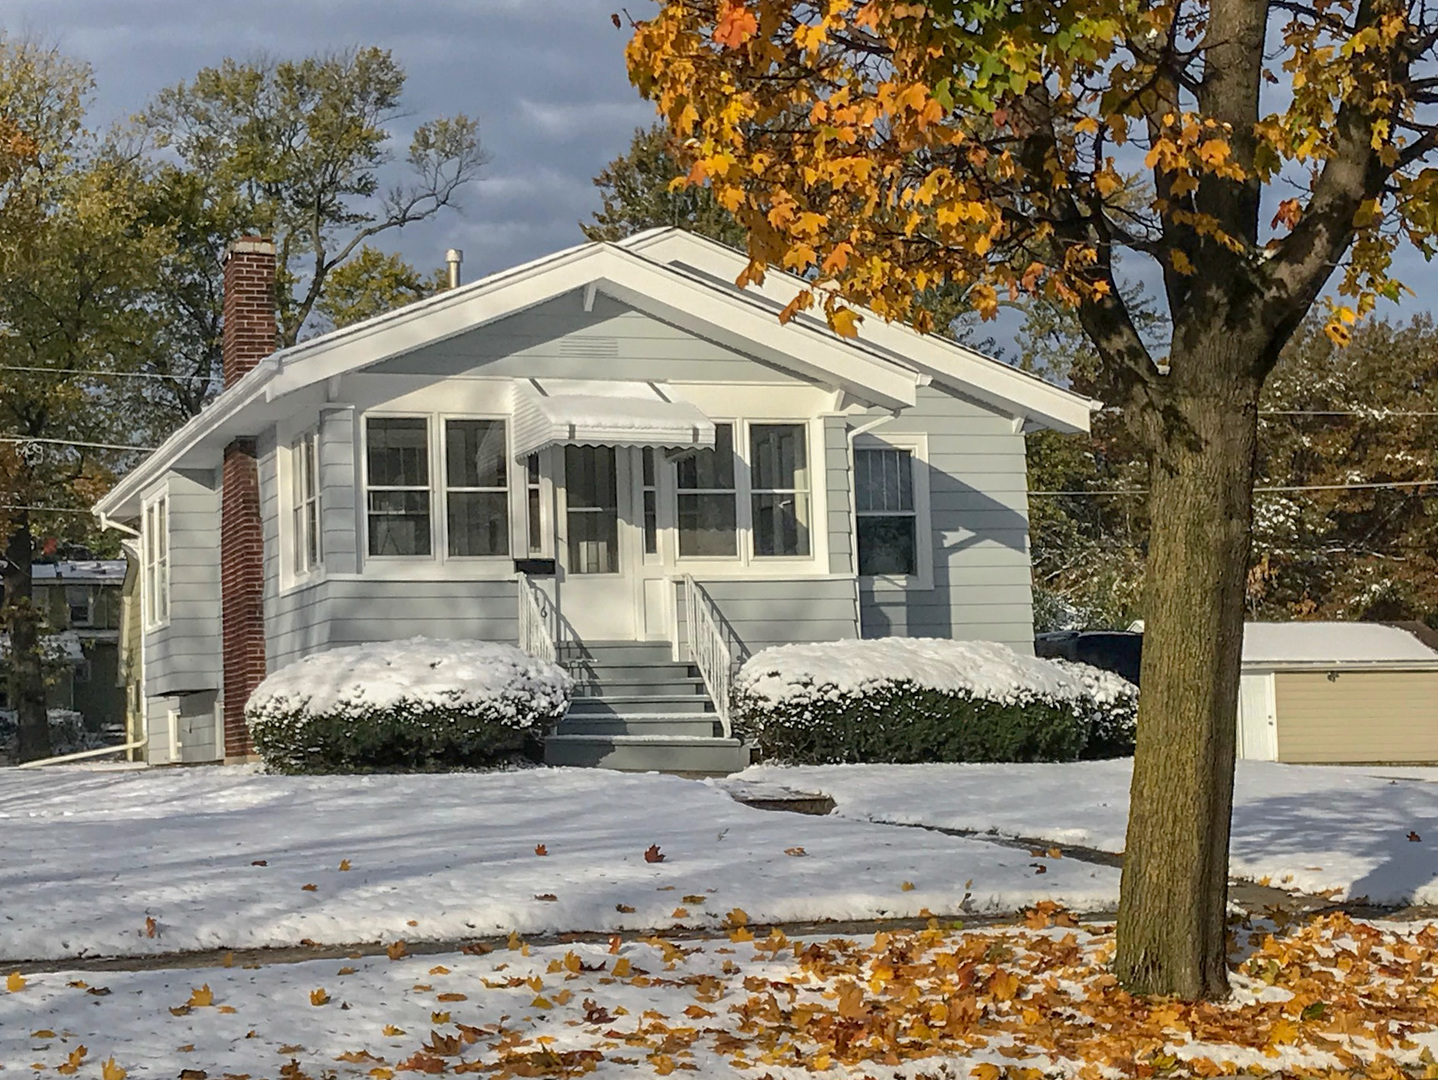 """Calling all rehabbers. This bungalow just a couple of blocks from the commuter train station would be a great investment. Full basement. Hardwood floors on main level. Electric fireplace (not wood burning).   Must be sold """"as is"""". Needs updating. 2.5 car garage. Sitting on an over sized 75X175 foot lot!"""